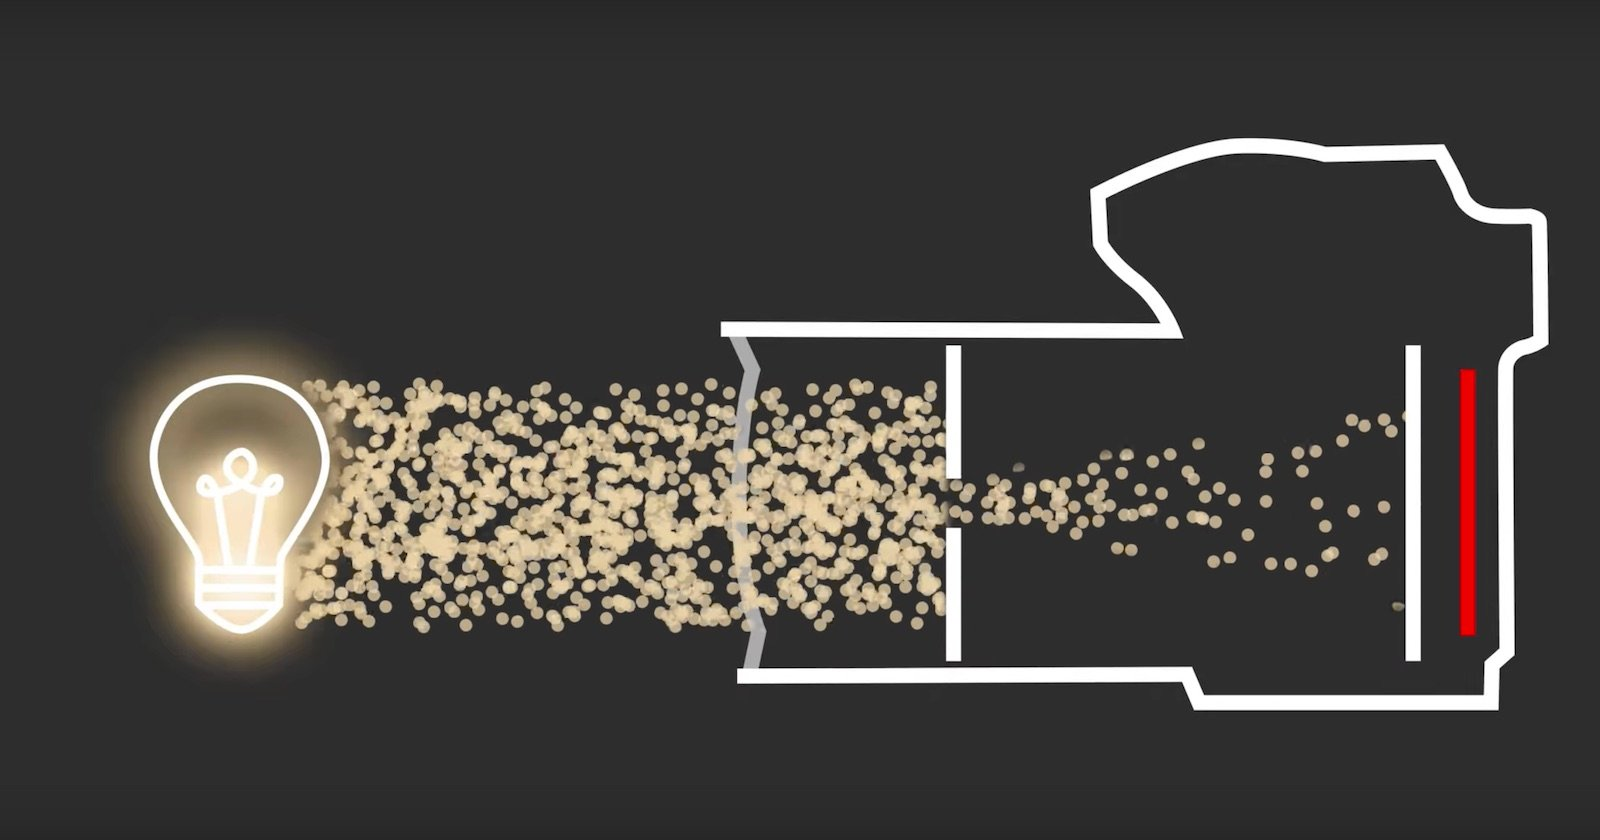 Video: A Simple Visual Explanation of Shutter Speed, Aperture, and ISO